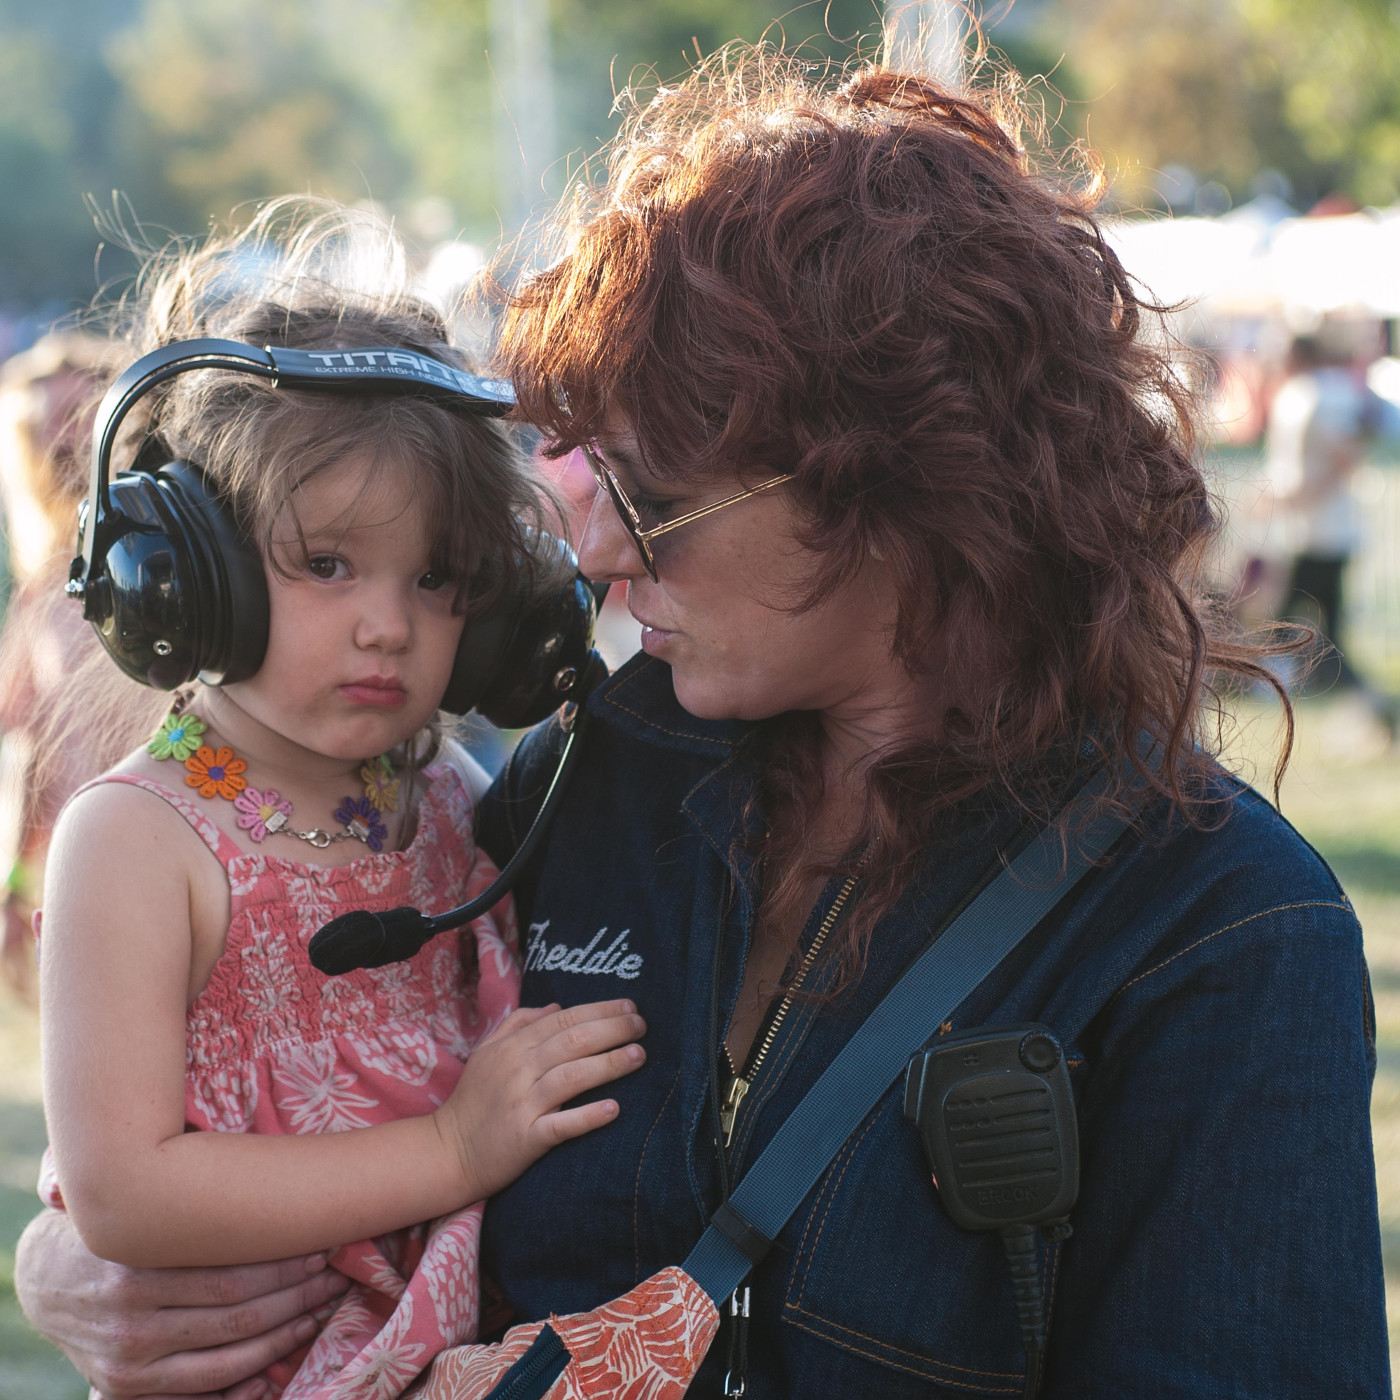 images/Desert Daze 2019/Julie Edwards spouse of Phil Pirrone with daughter watching pop perform DSC_8746